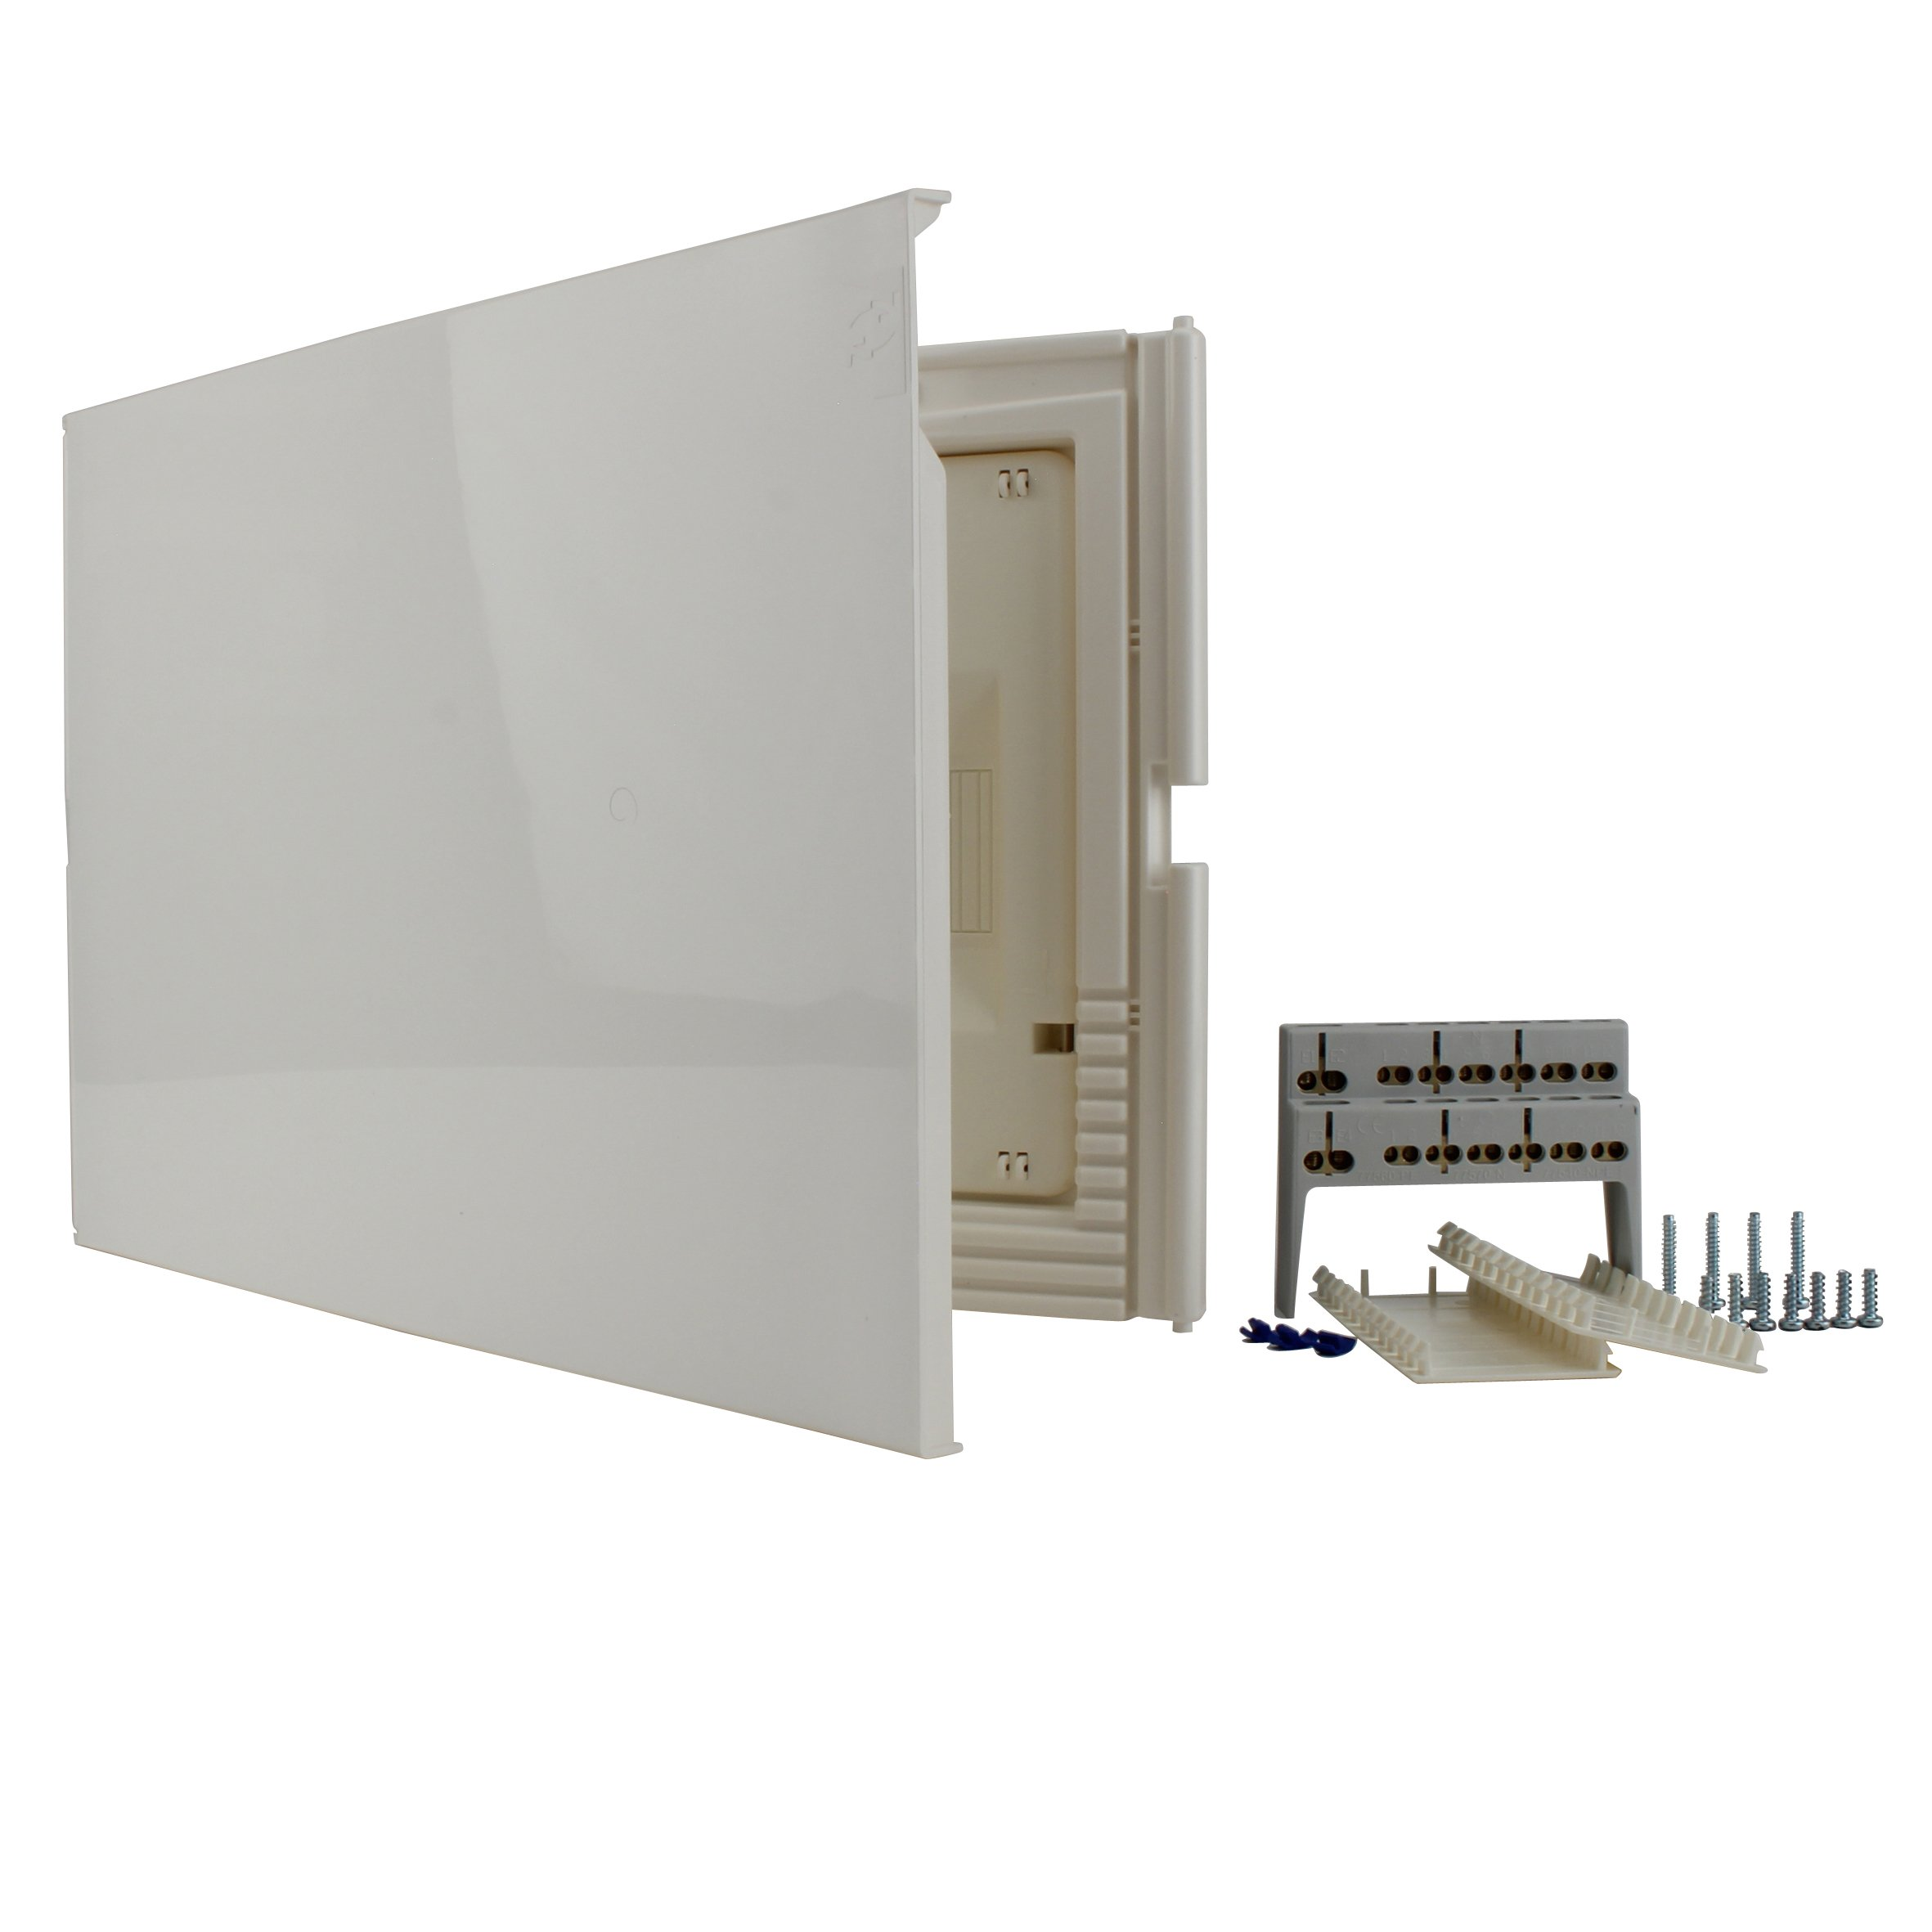 Unitec 40647 Small Distribution Board Flush-Mounted with Door 1-Row IP30